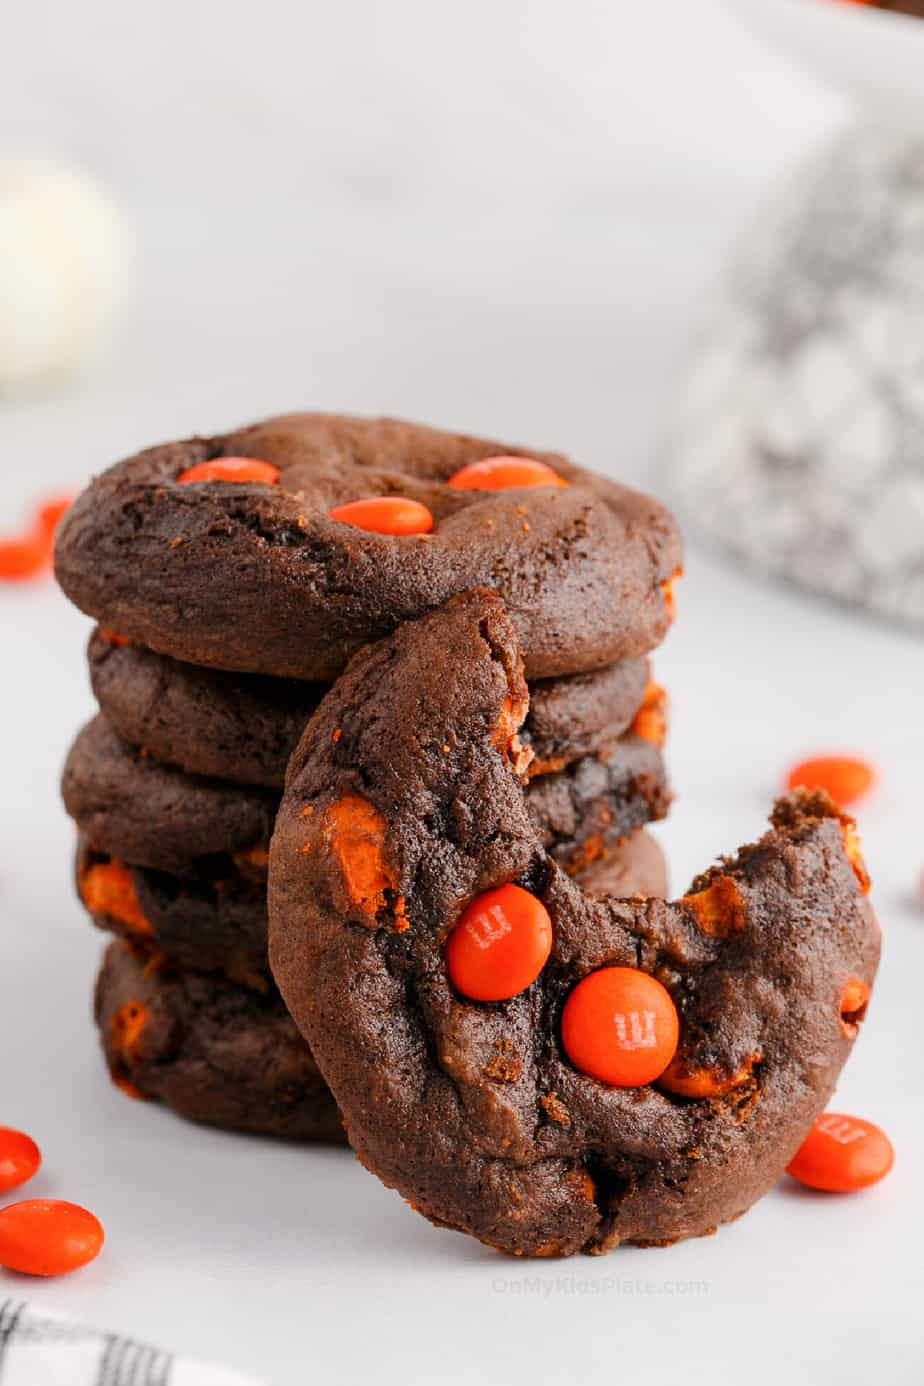 Stack of chocolate cookies with orange candies. One cookie has a bite missing